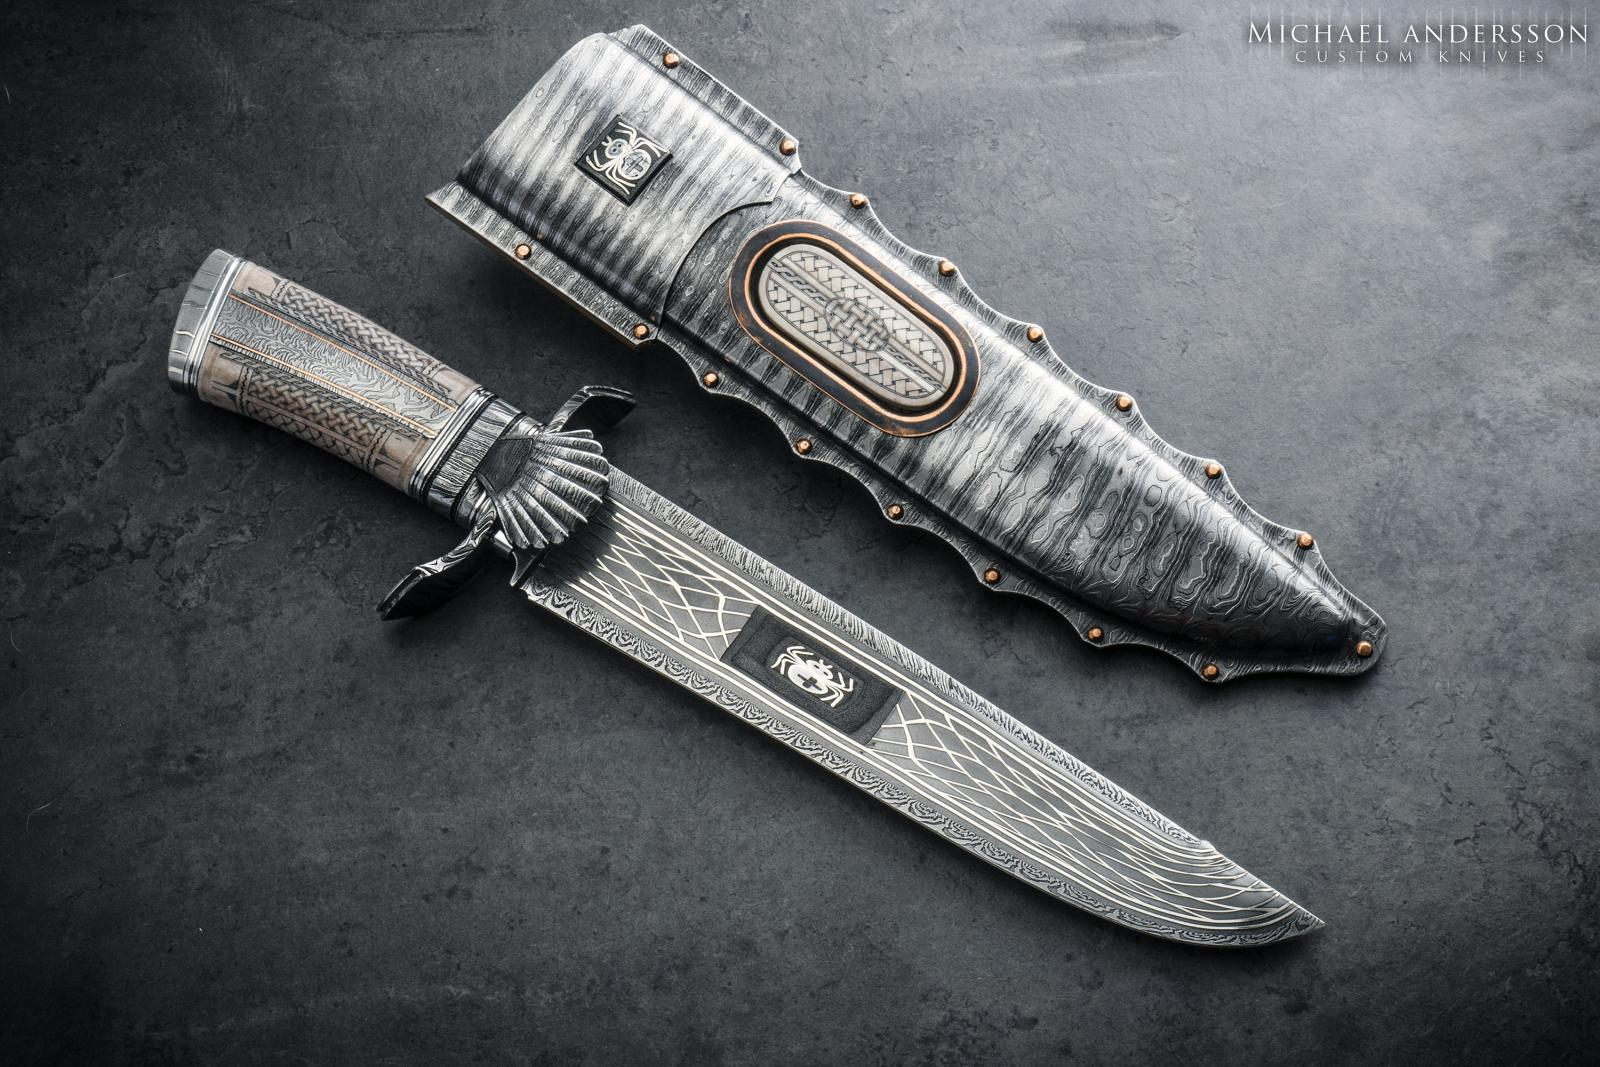 Micke Andersson Custom Sole-Authored Large Custom Bowie